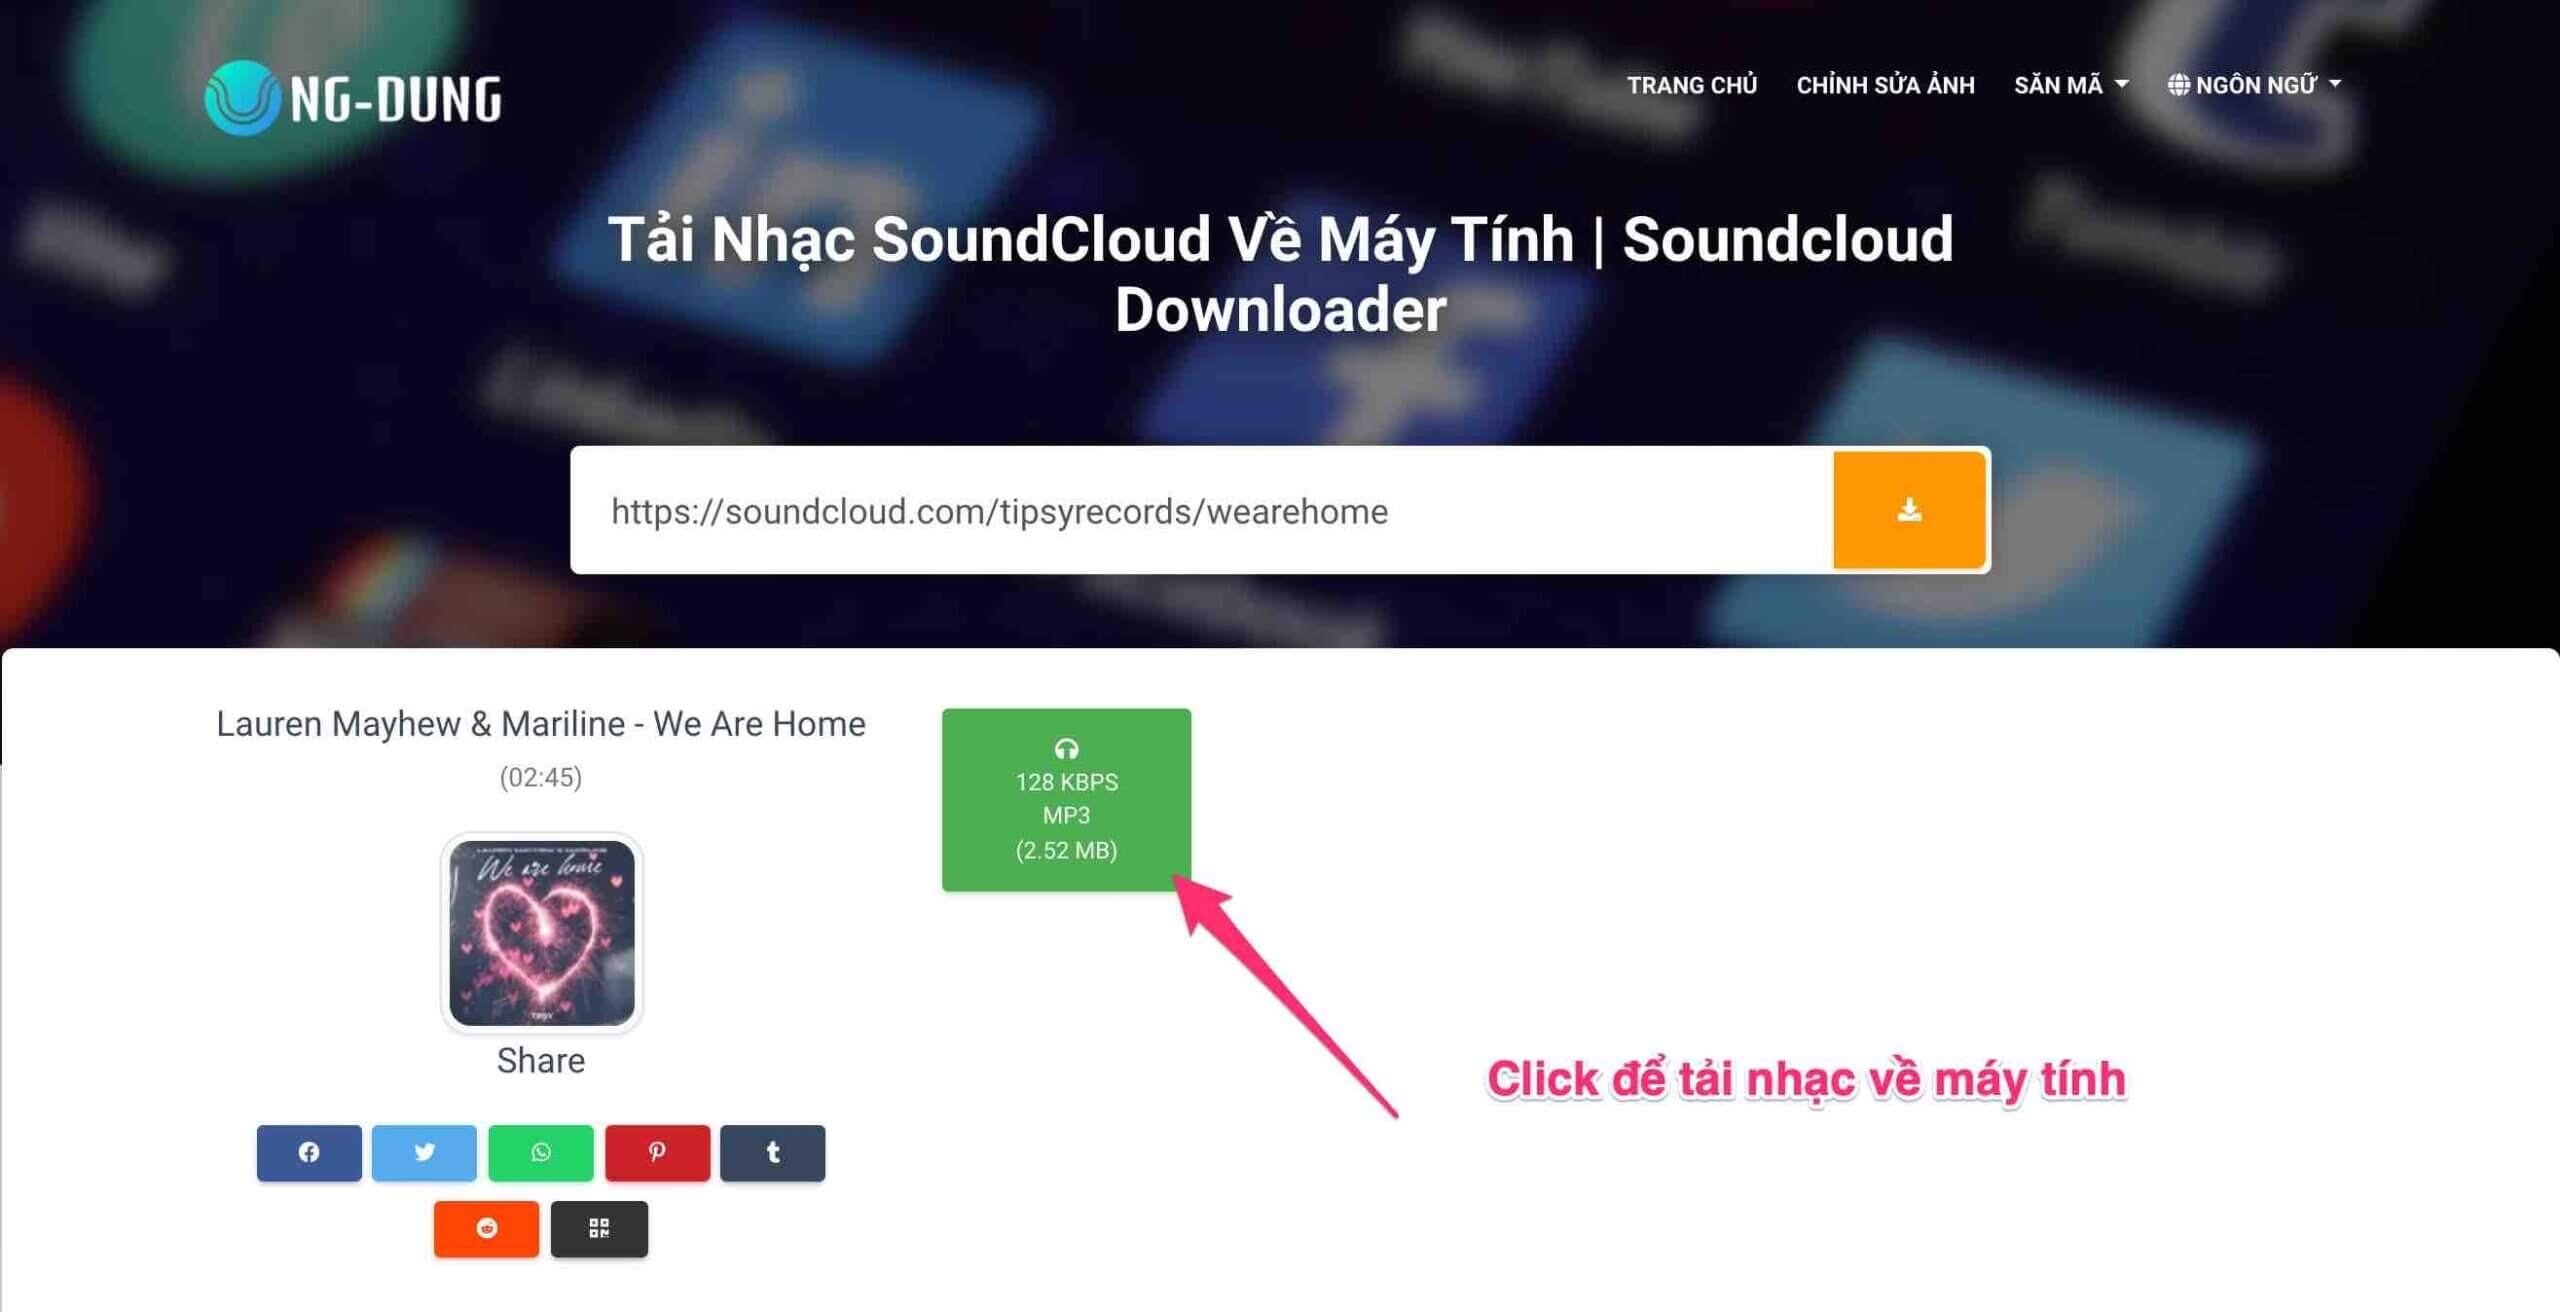 tai nhac soundcloud ve may tinh